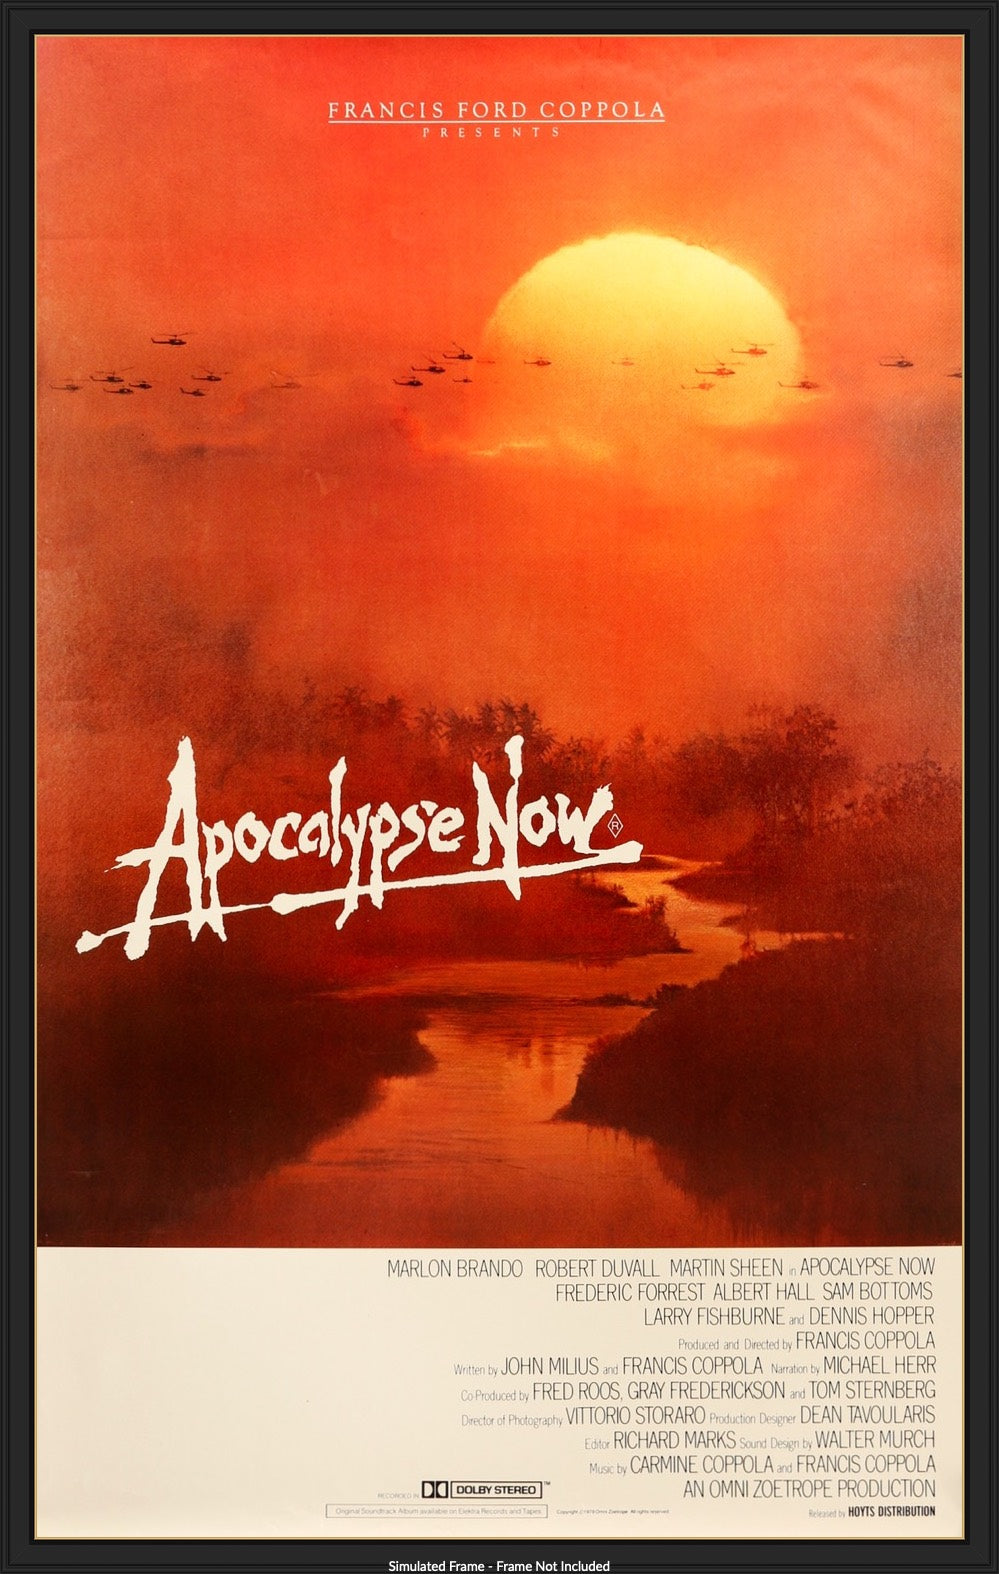 Apocalypse Now (1979) Original Australian One-Sheet Movie Poster - Original  Film Art - Vintage Movie Posters